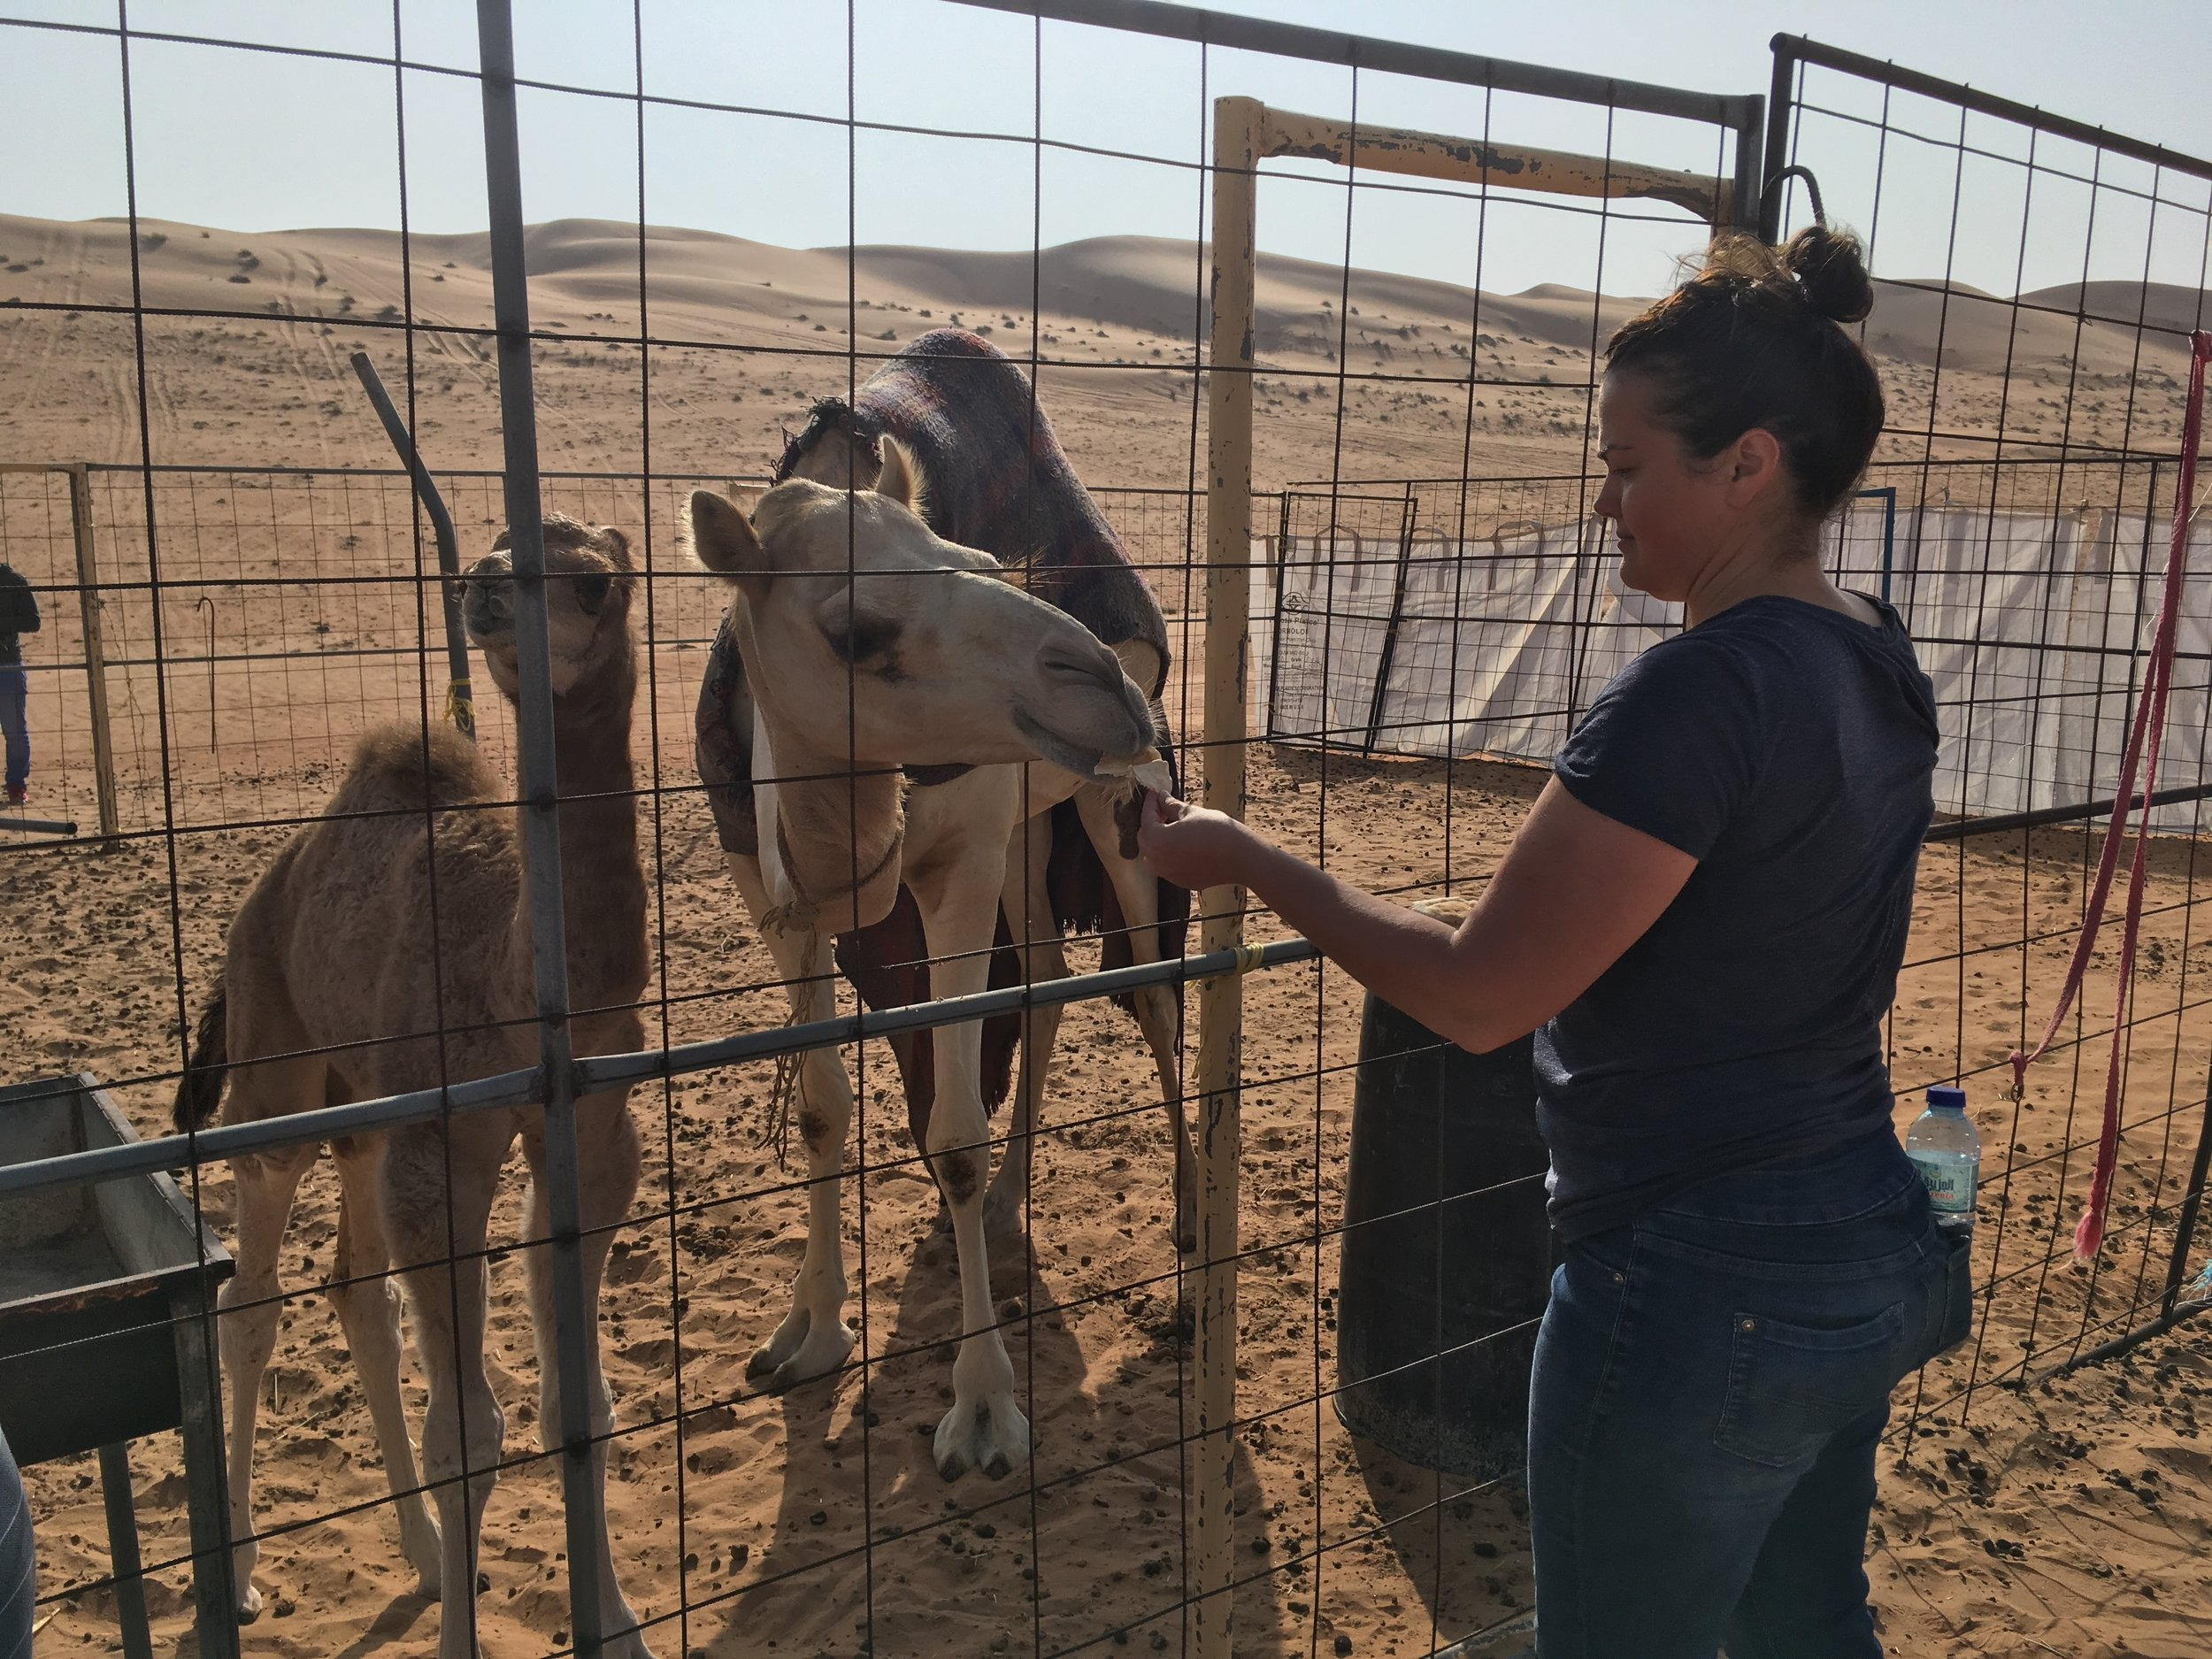 Apprehensively feeding the camels a little of yesterday's pita